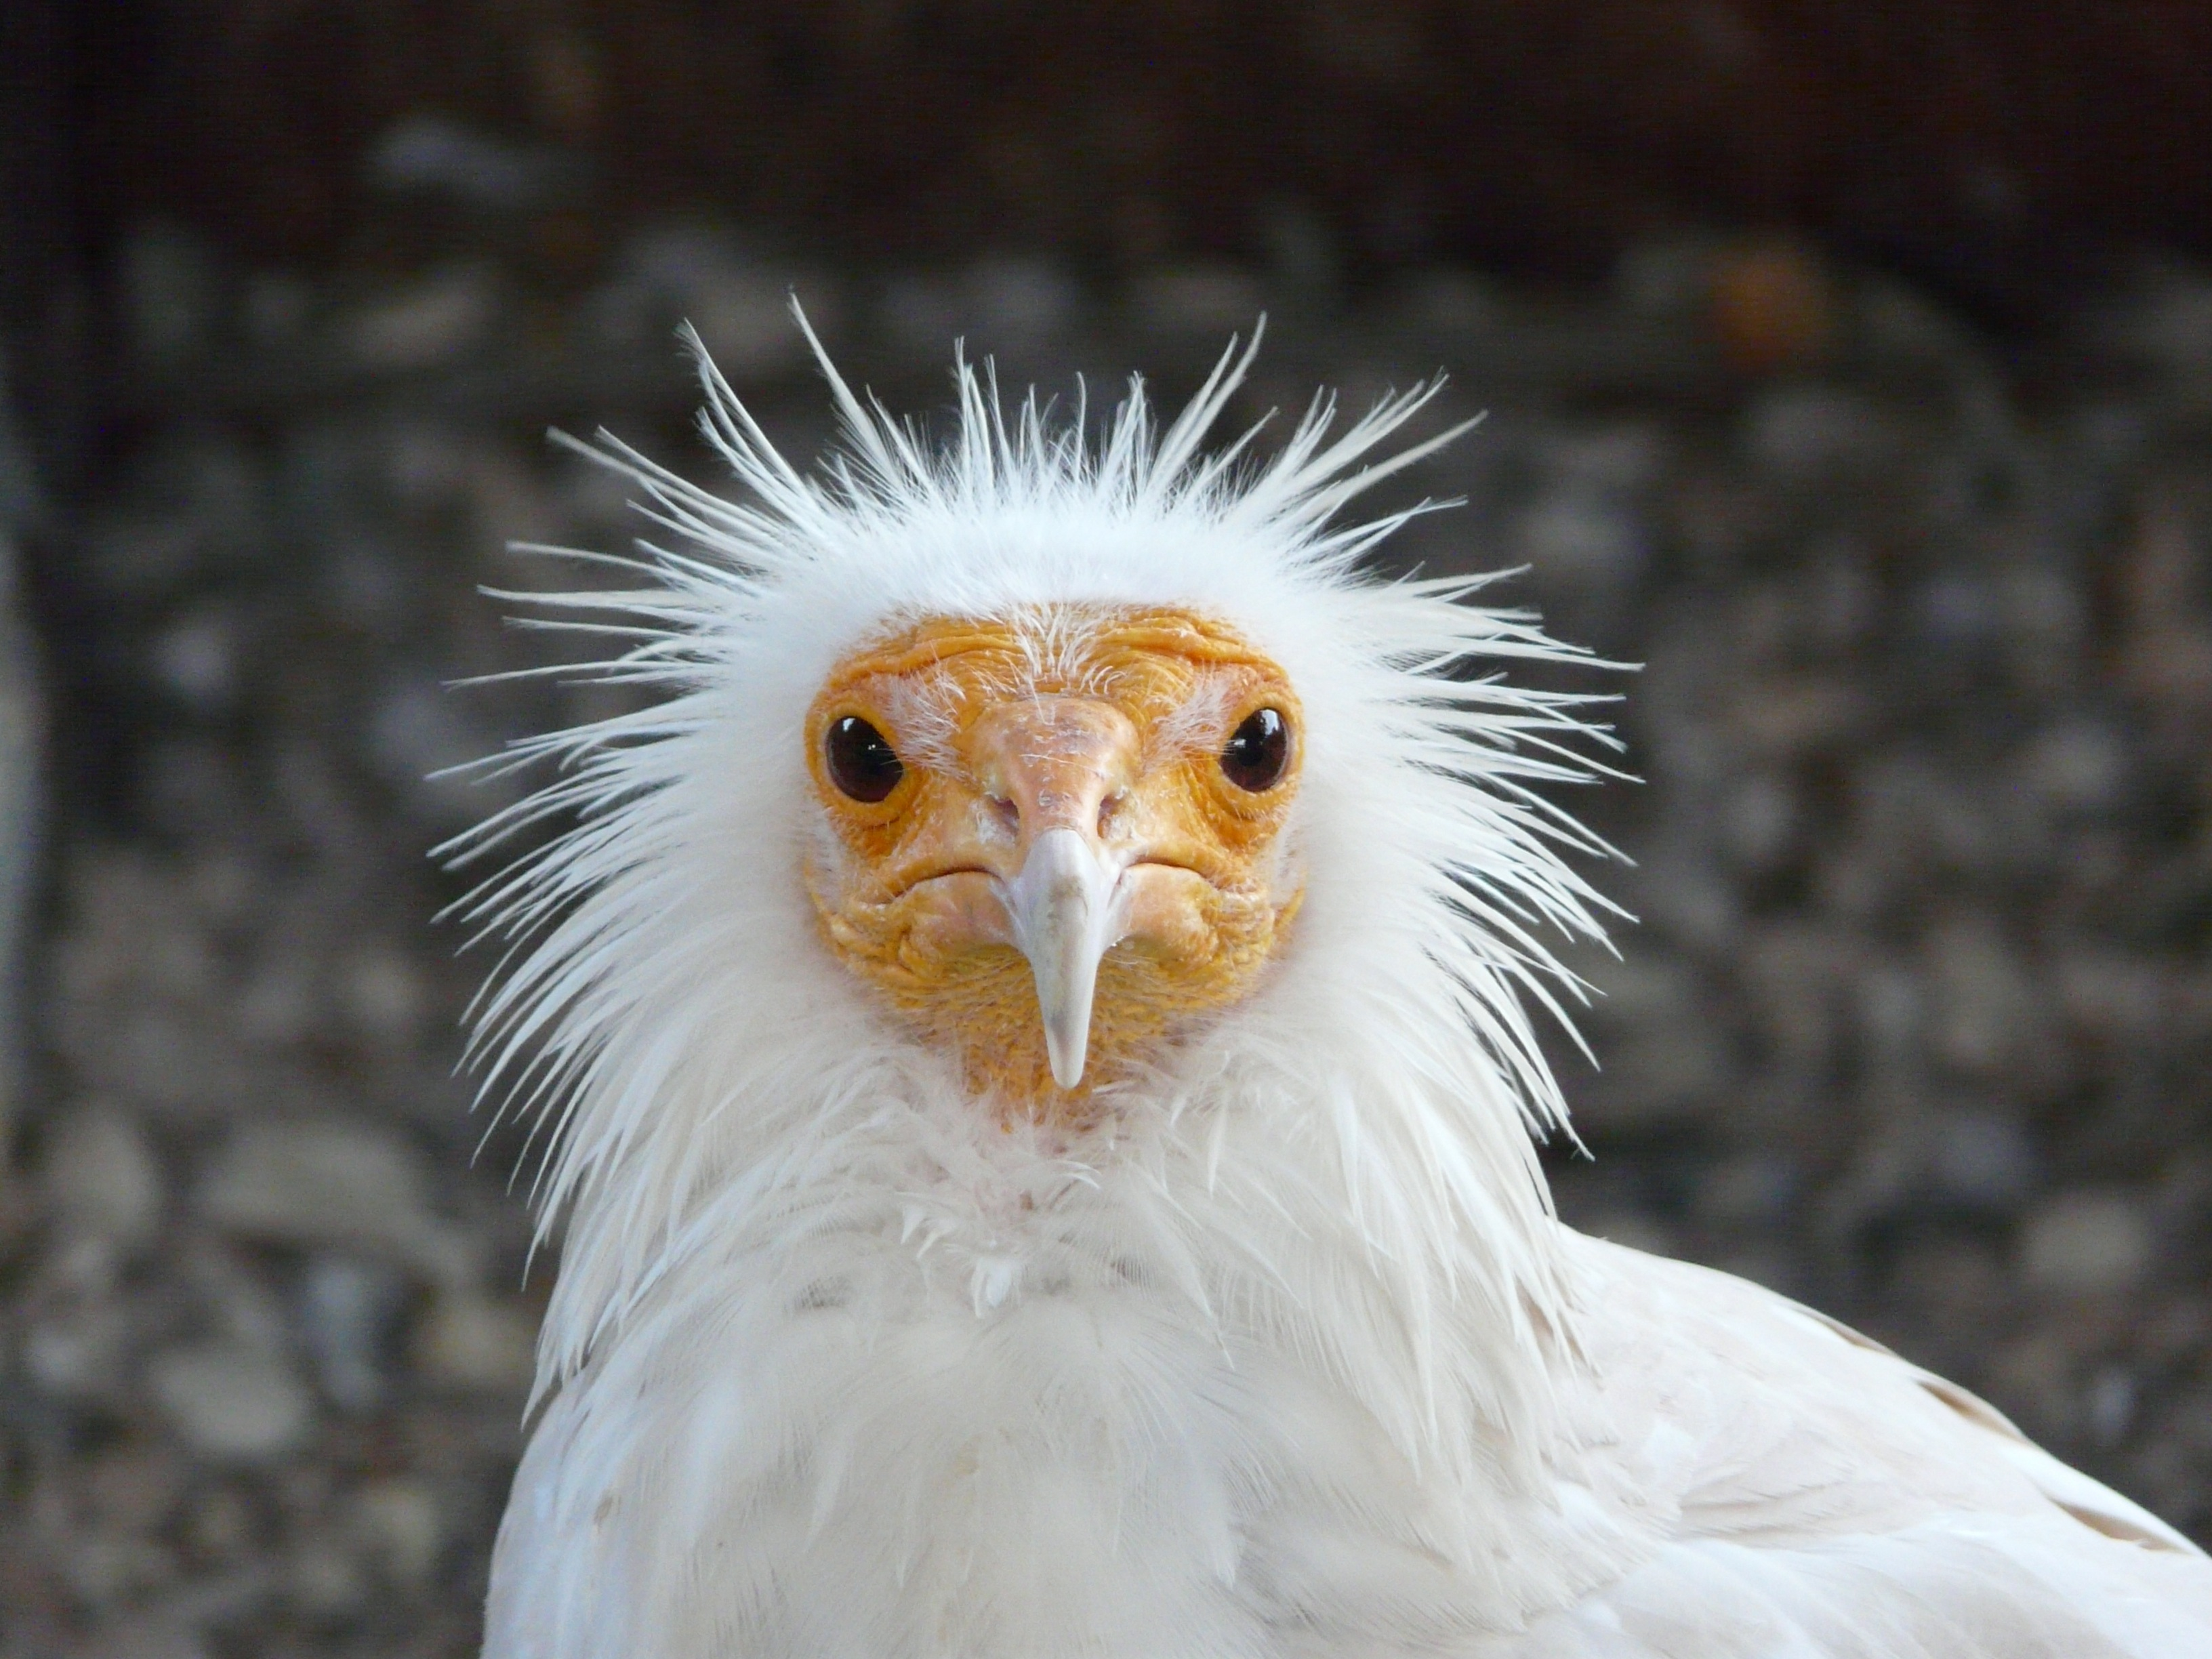 60461 download wallpaper Animals, Bird, Disheveled, Ruffled, Cool screensavers and pictures for free